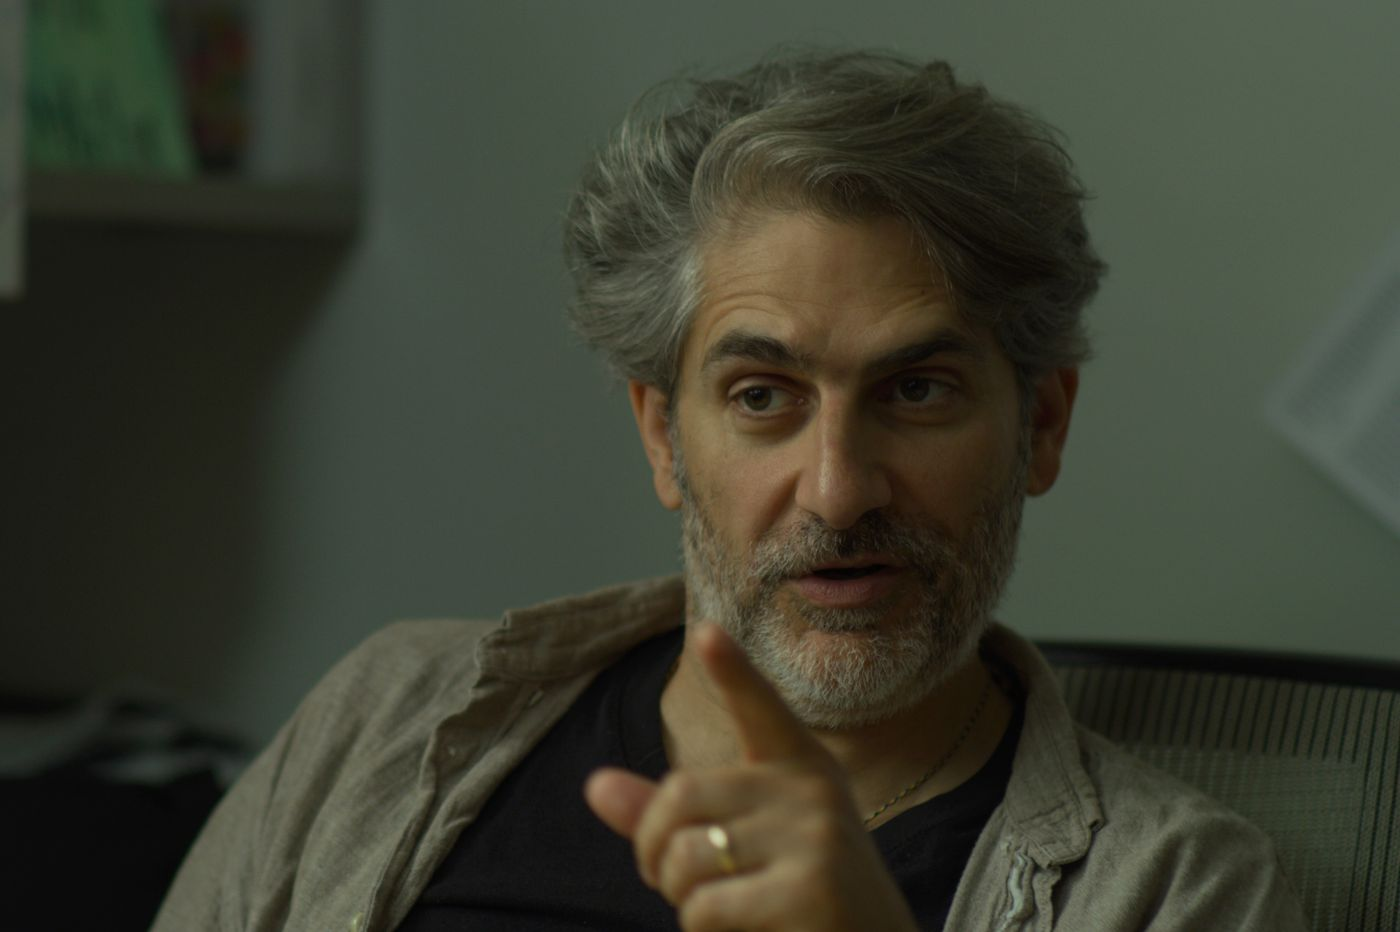 Michael Imperioli of 'The Sopranos' shot his new movie guerrilla-style in Philly